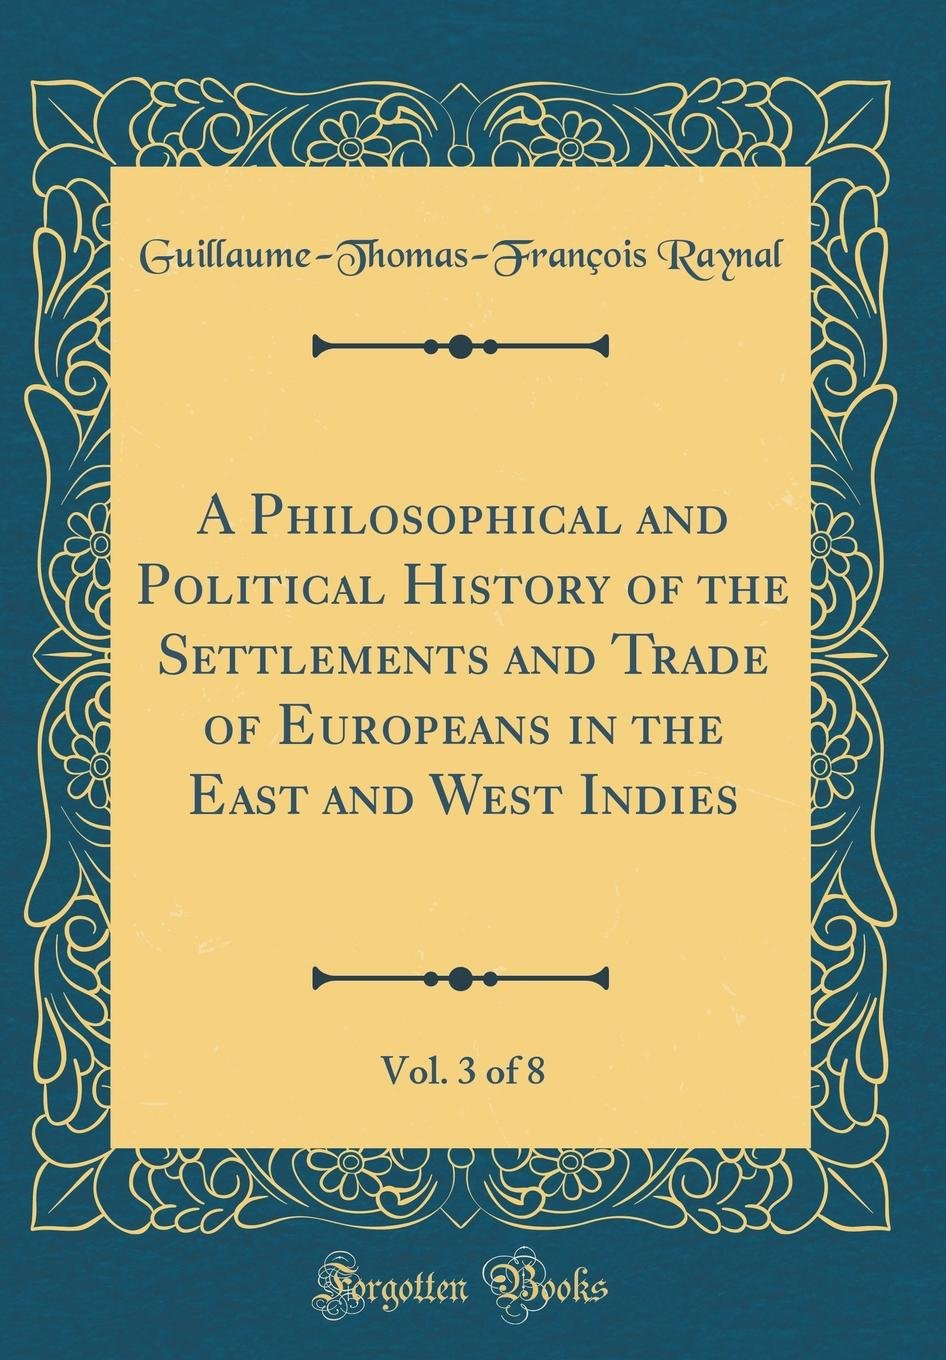 Download A Philosophical and Political History of the Settlements and Trade of Europeans in the East and West Indies, Vol. 3 of 8 (Classic Reprint) ebook